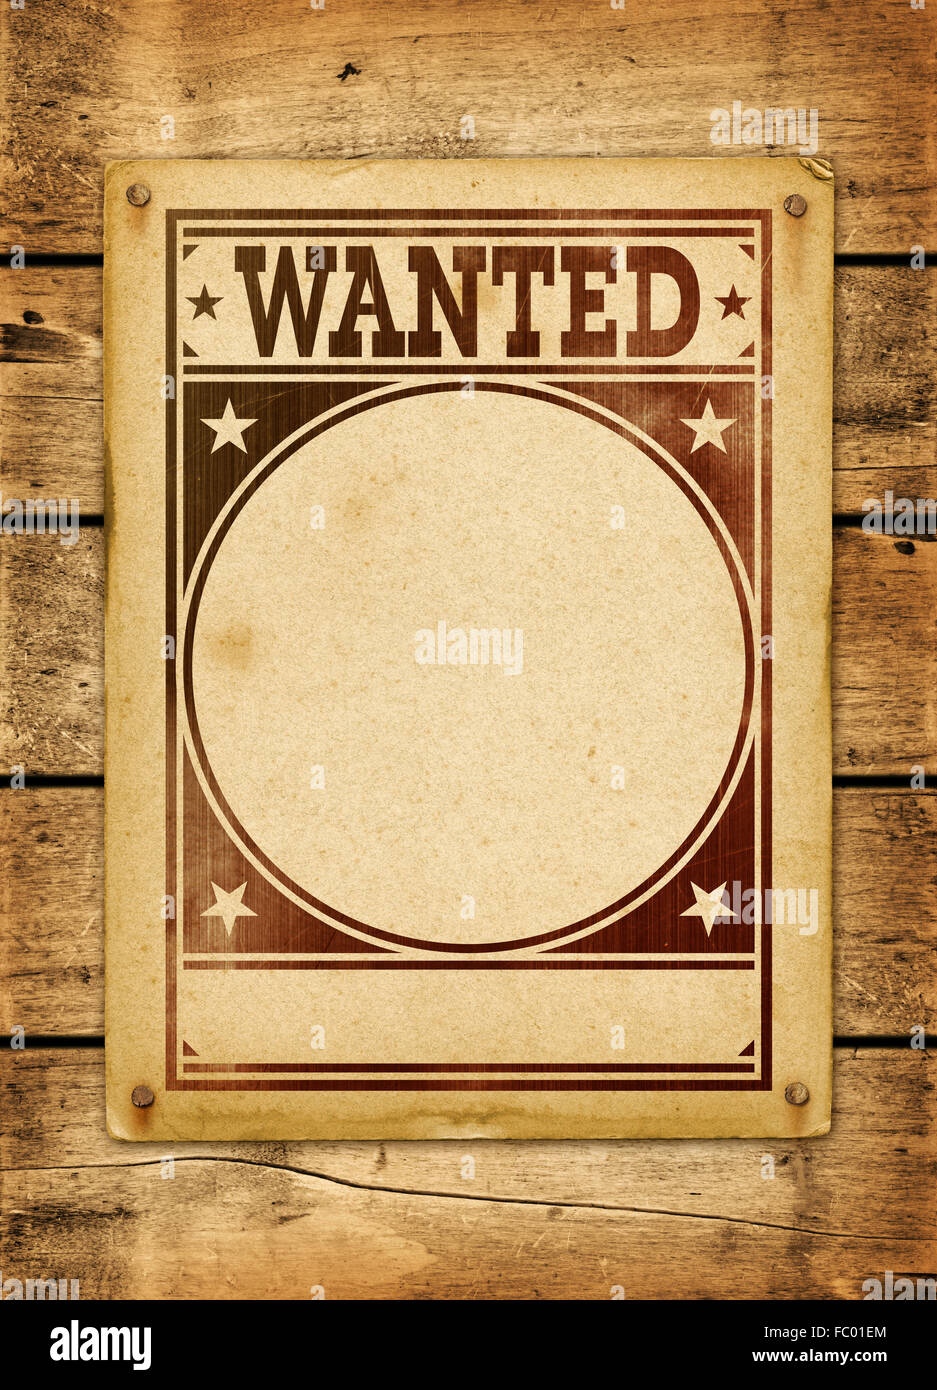 Wanted poster template stock photos wanted poster template stock wanted poster on a wood board stock image maxwellsz